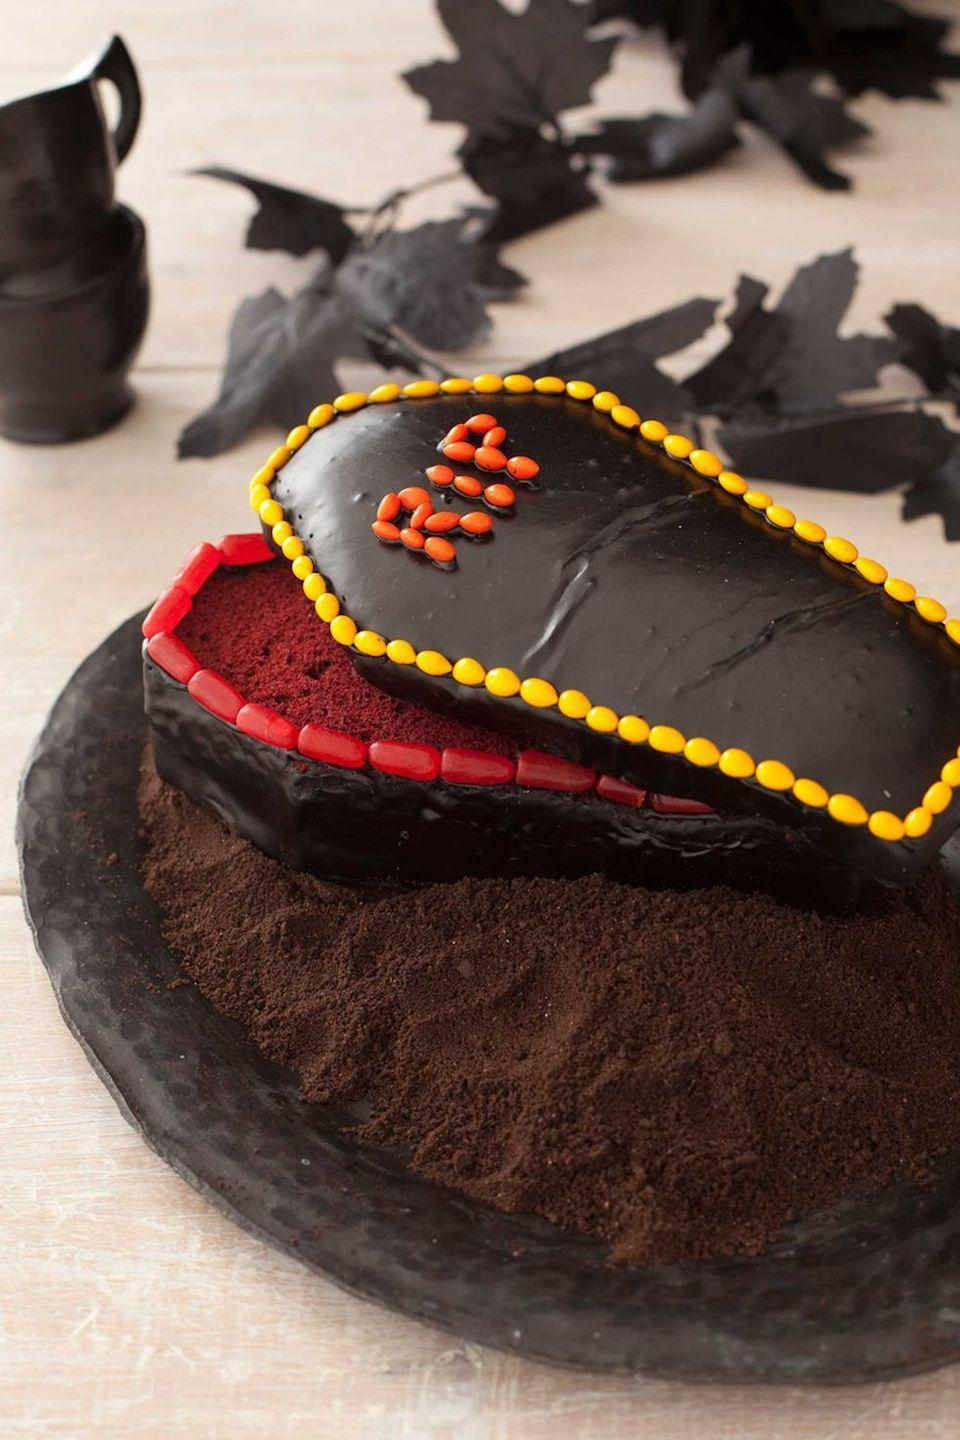 """<p>Dessert becomes a graveyard smash when it's a red velvet cake that's been baked in a loaf pan and cut into a coffin shape. Chop off the top to turn it into a lid that, when perched slightly askew, looks like a vampire escaped.</p><p><em><a href=""""https://www.womansday.com/food-recipes/food-drinks/recipes/a11307/coffin-cake-recipe-122711/"""" rel=""""nofollow noopener"""" target=""""_blank"""" data-ylk=""""slk:Get the recipe for Coffin Cake"""" class=""""link rapid-noclick-resp"""">Get the recipe for Coffin Cake</a>.</em></p>"""